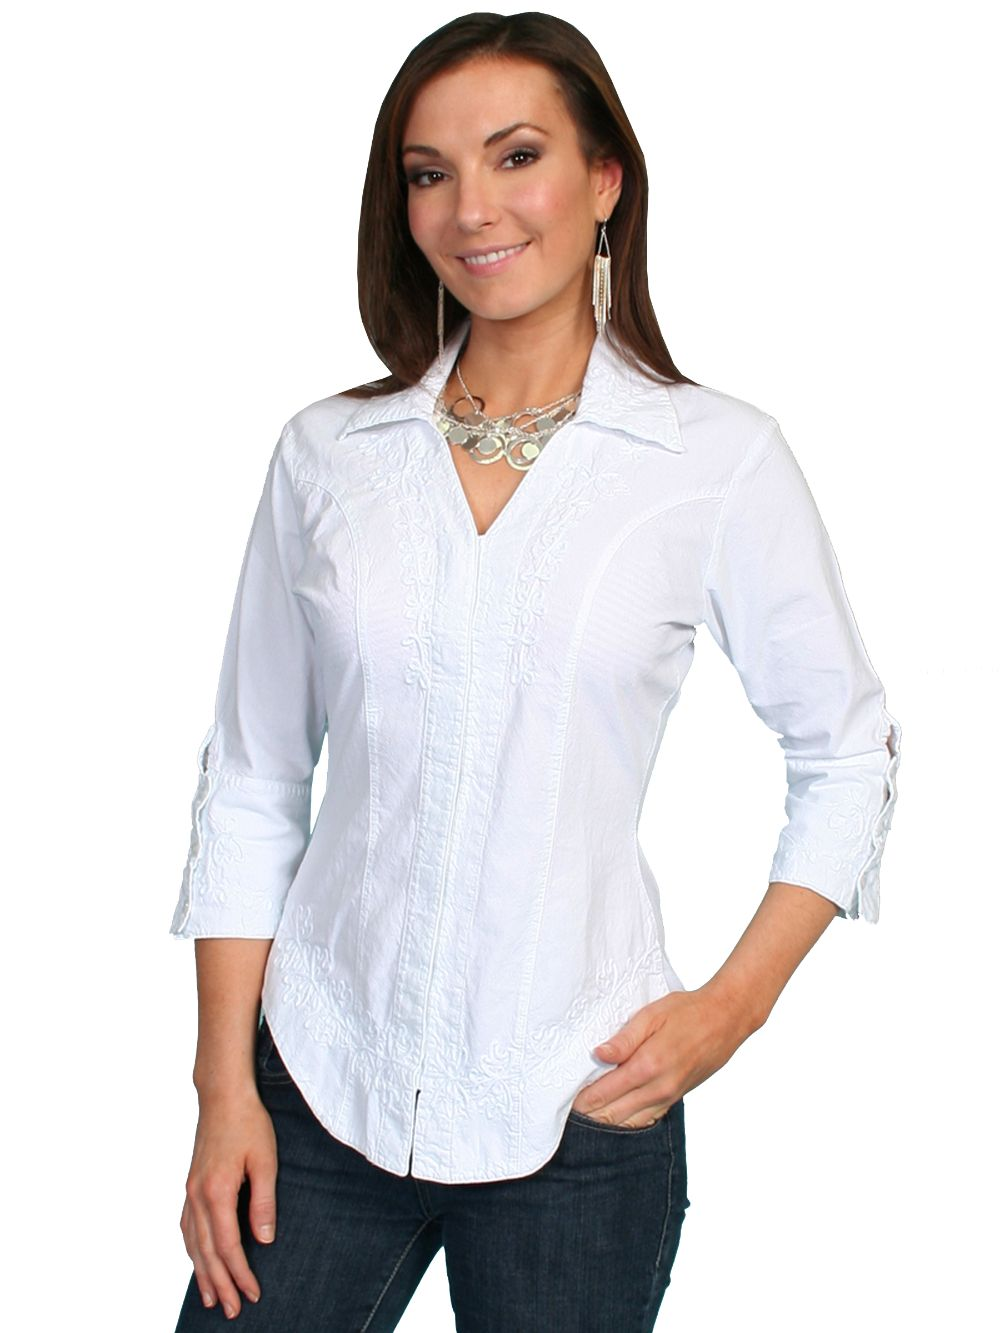 3/4 Sleeve Peruvian Cotton Blouse - Psl-063 - White. (ships in 1-2 days). #F0_PSL-063_WHT